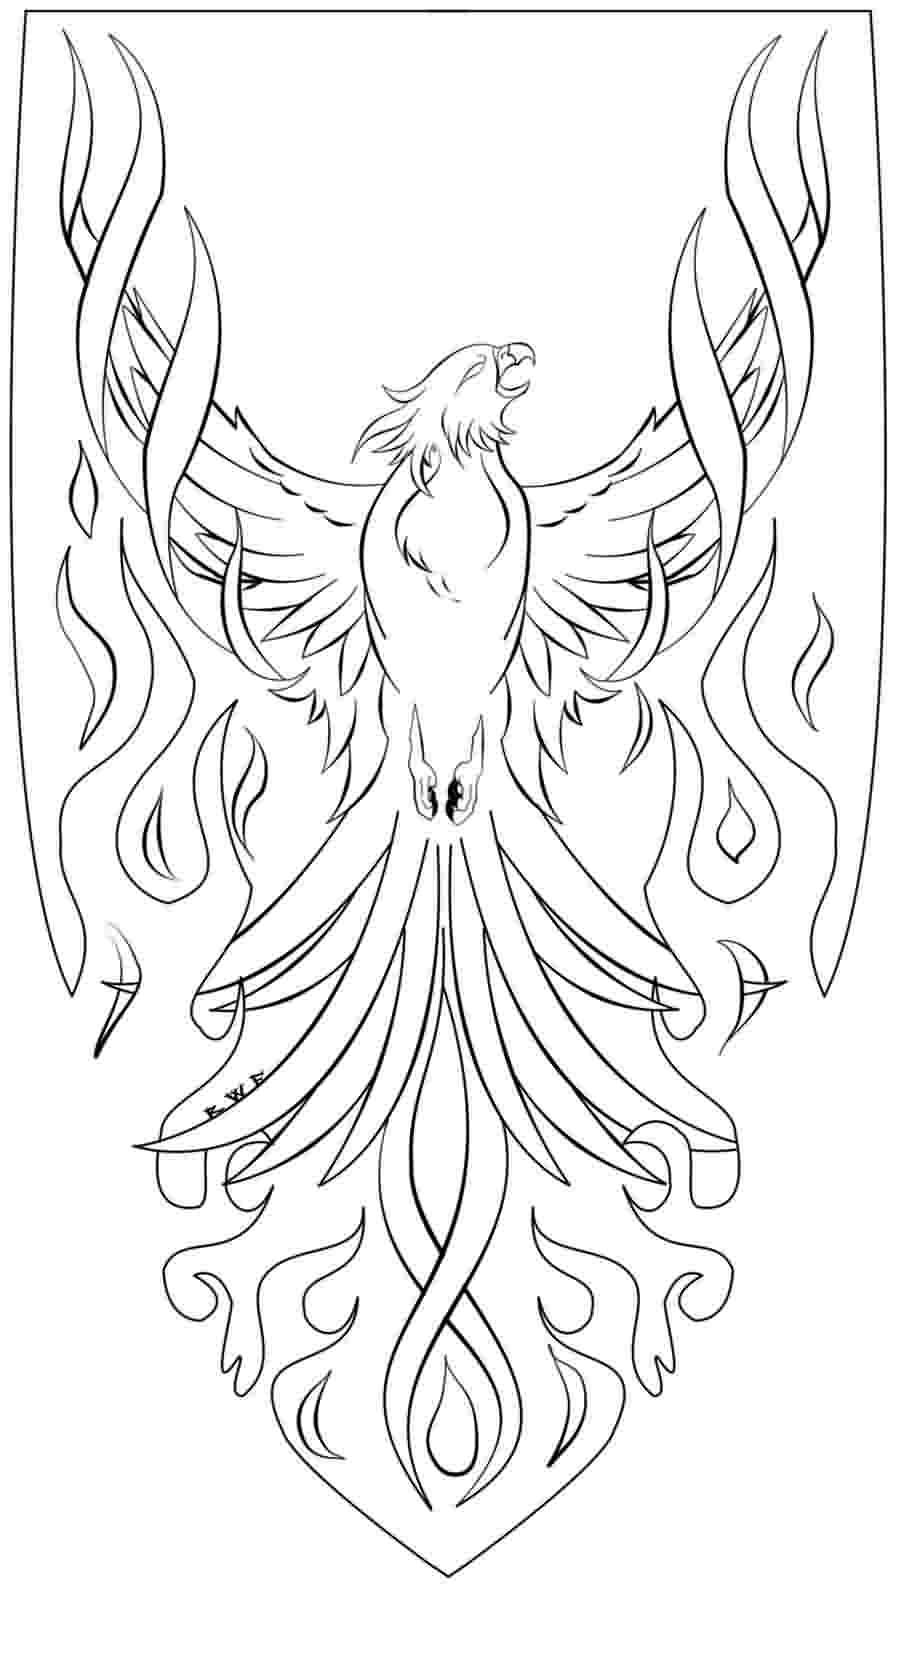 Phoenix Lineart Tattoo Design